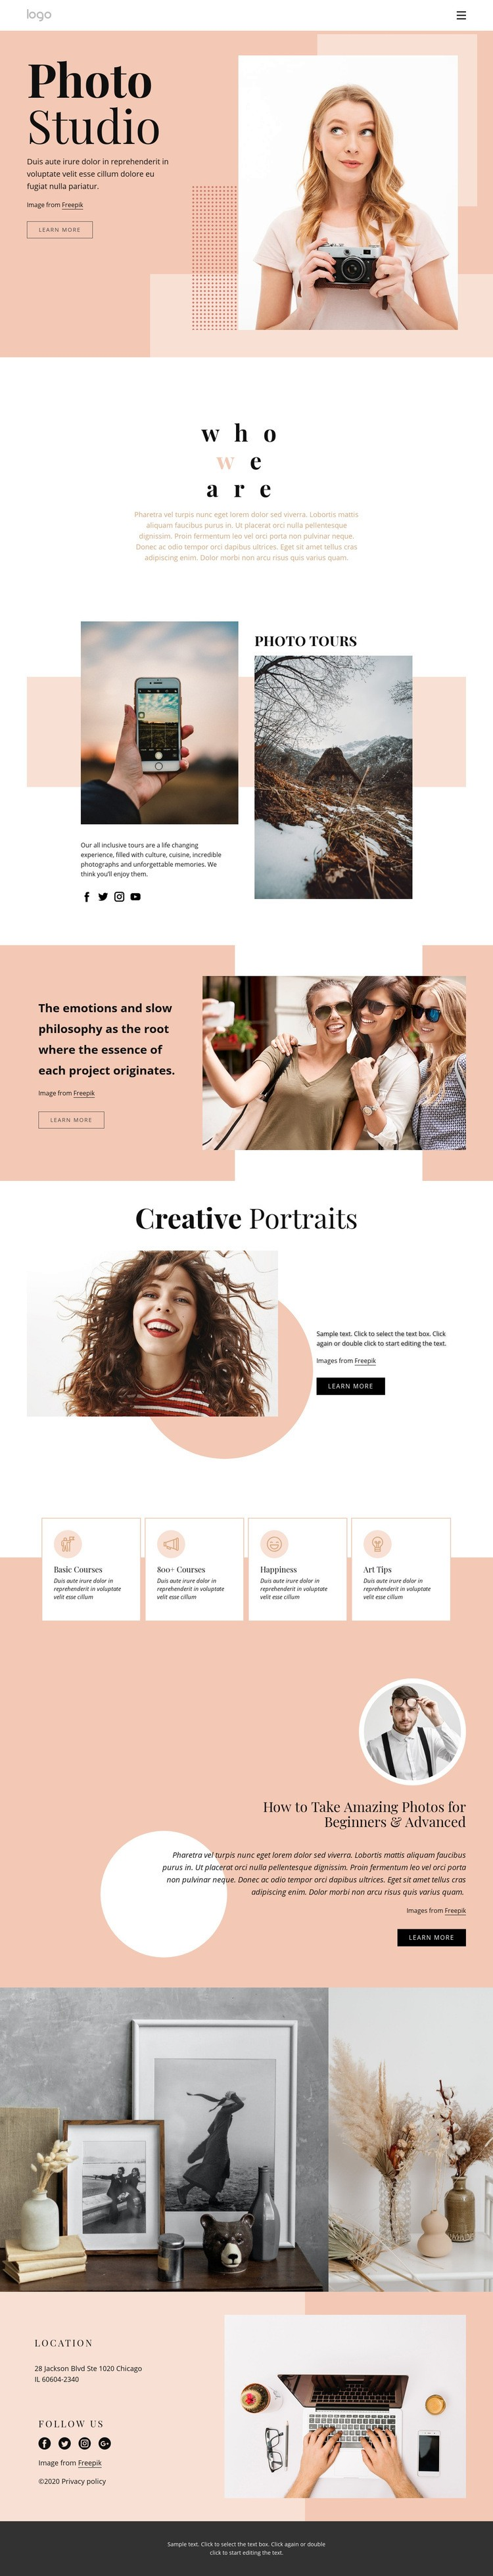 Photography courses Web Page Designer